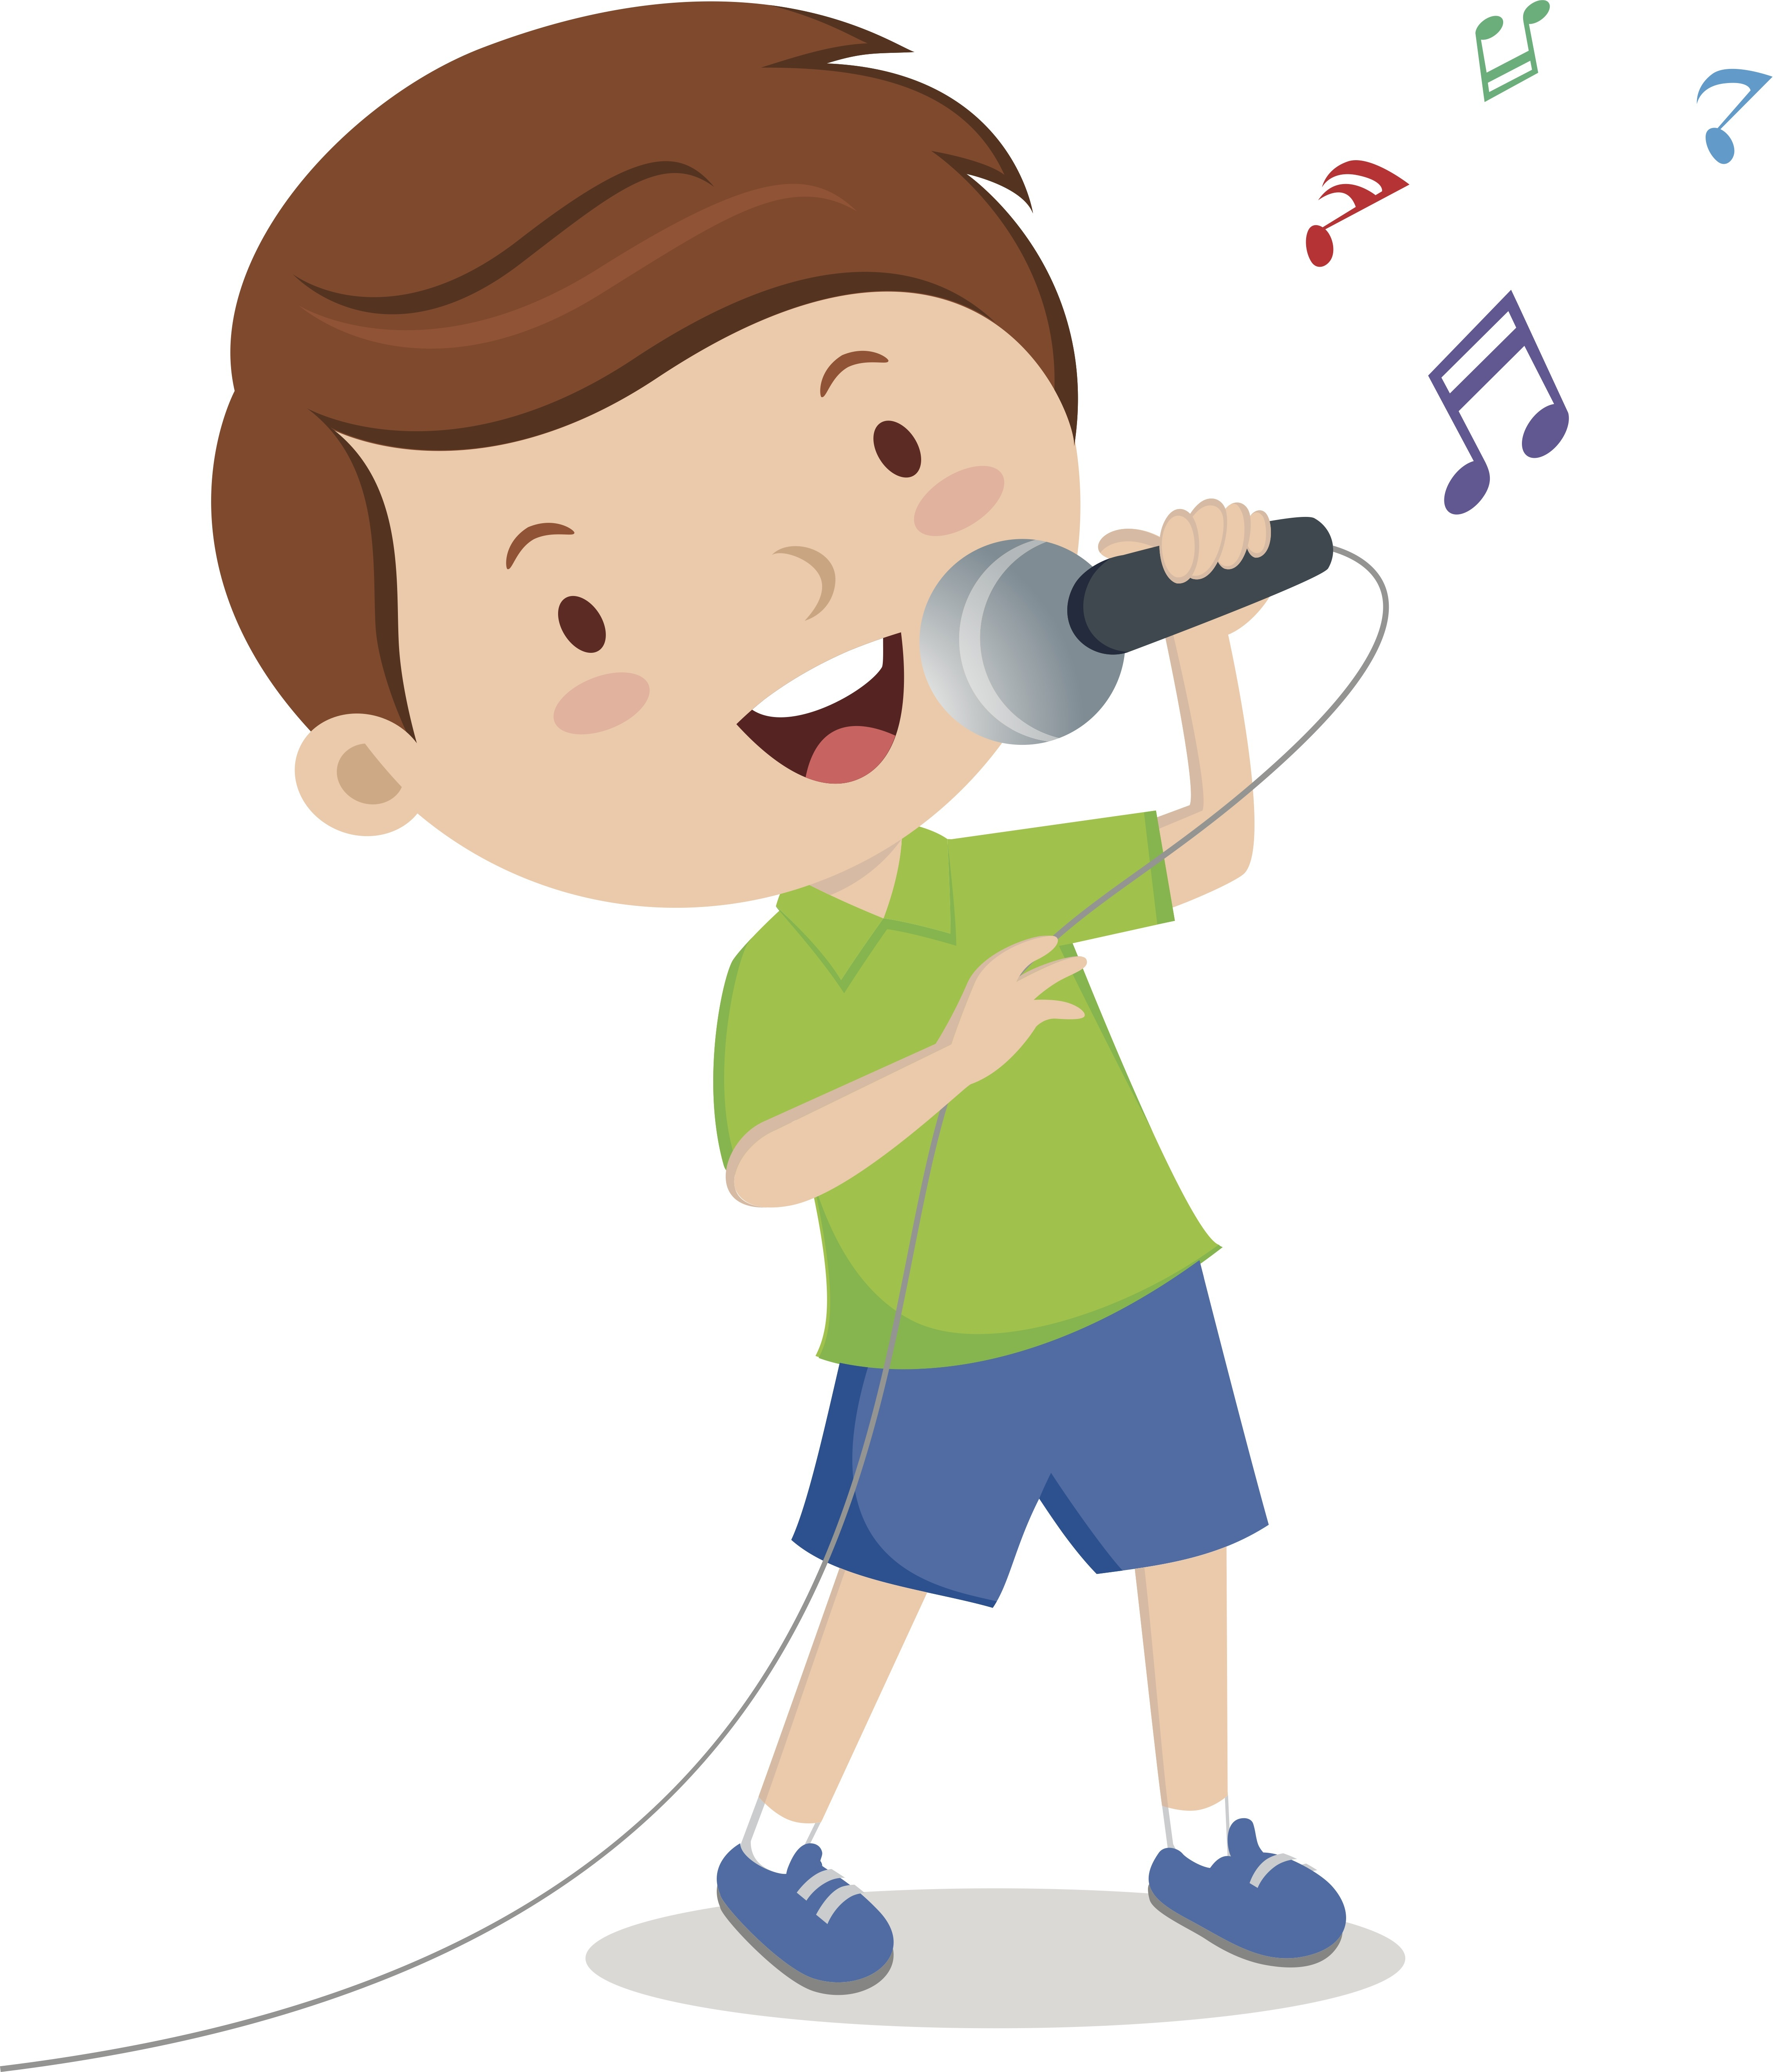 4527x5291 Clipart Of Child Singing Amp Clip Art Of Child Singing Images